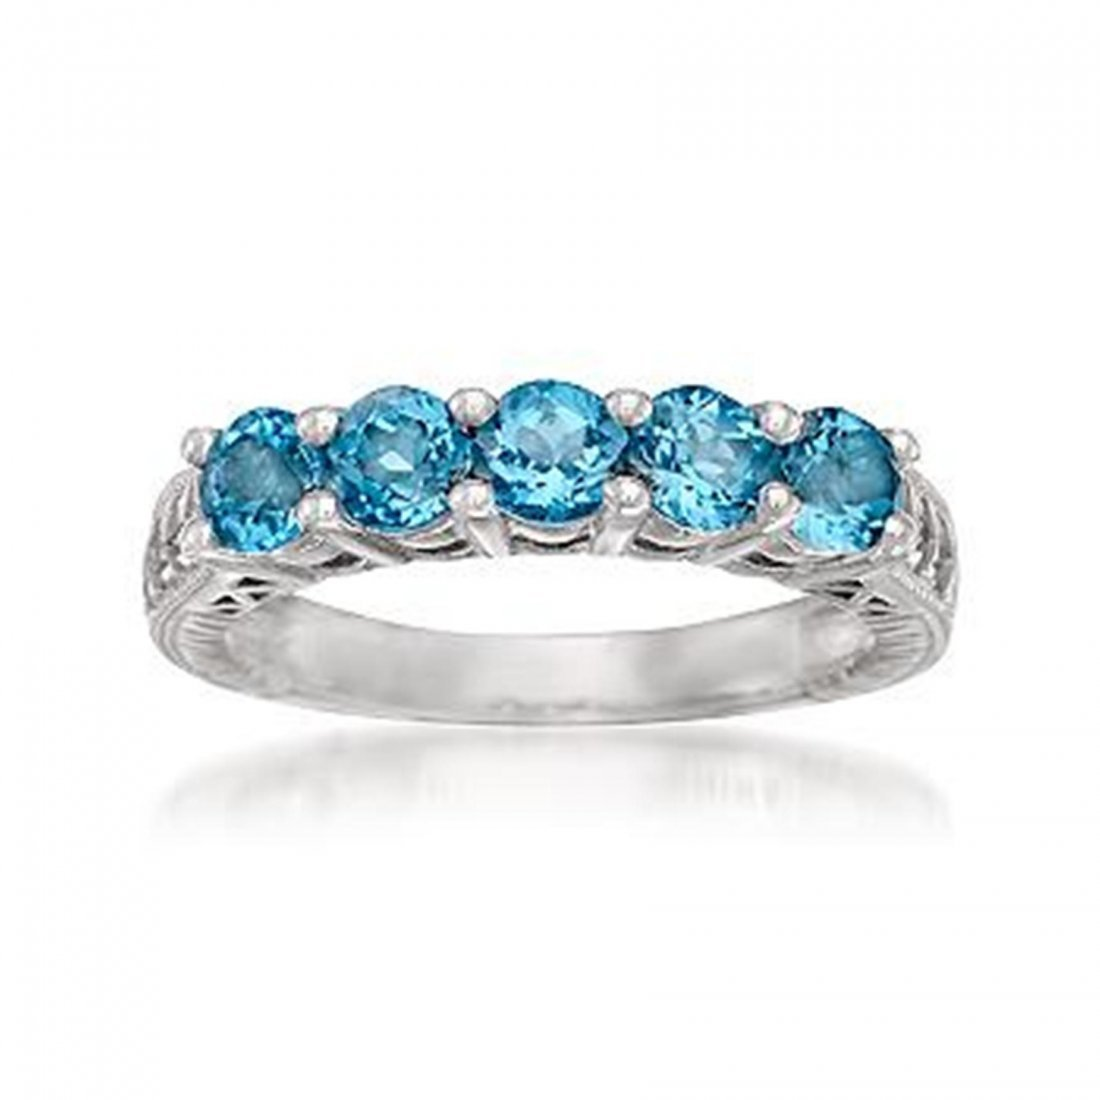 2H: 1.50 ct. t.w. Blue Topaz 5-Stone Ring in Sterling S